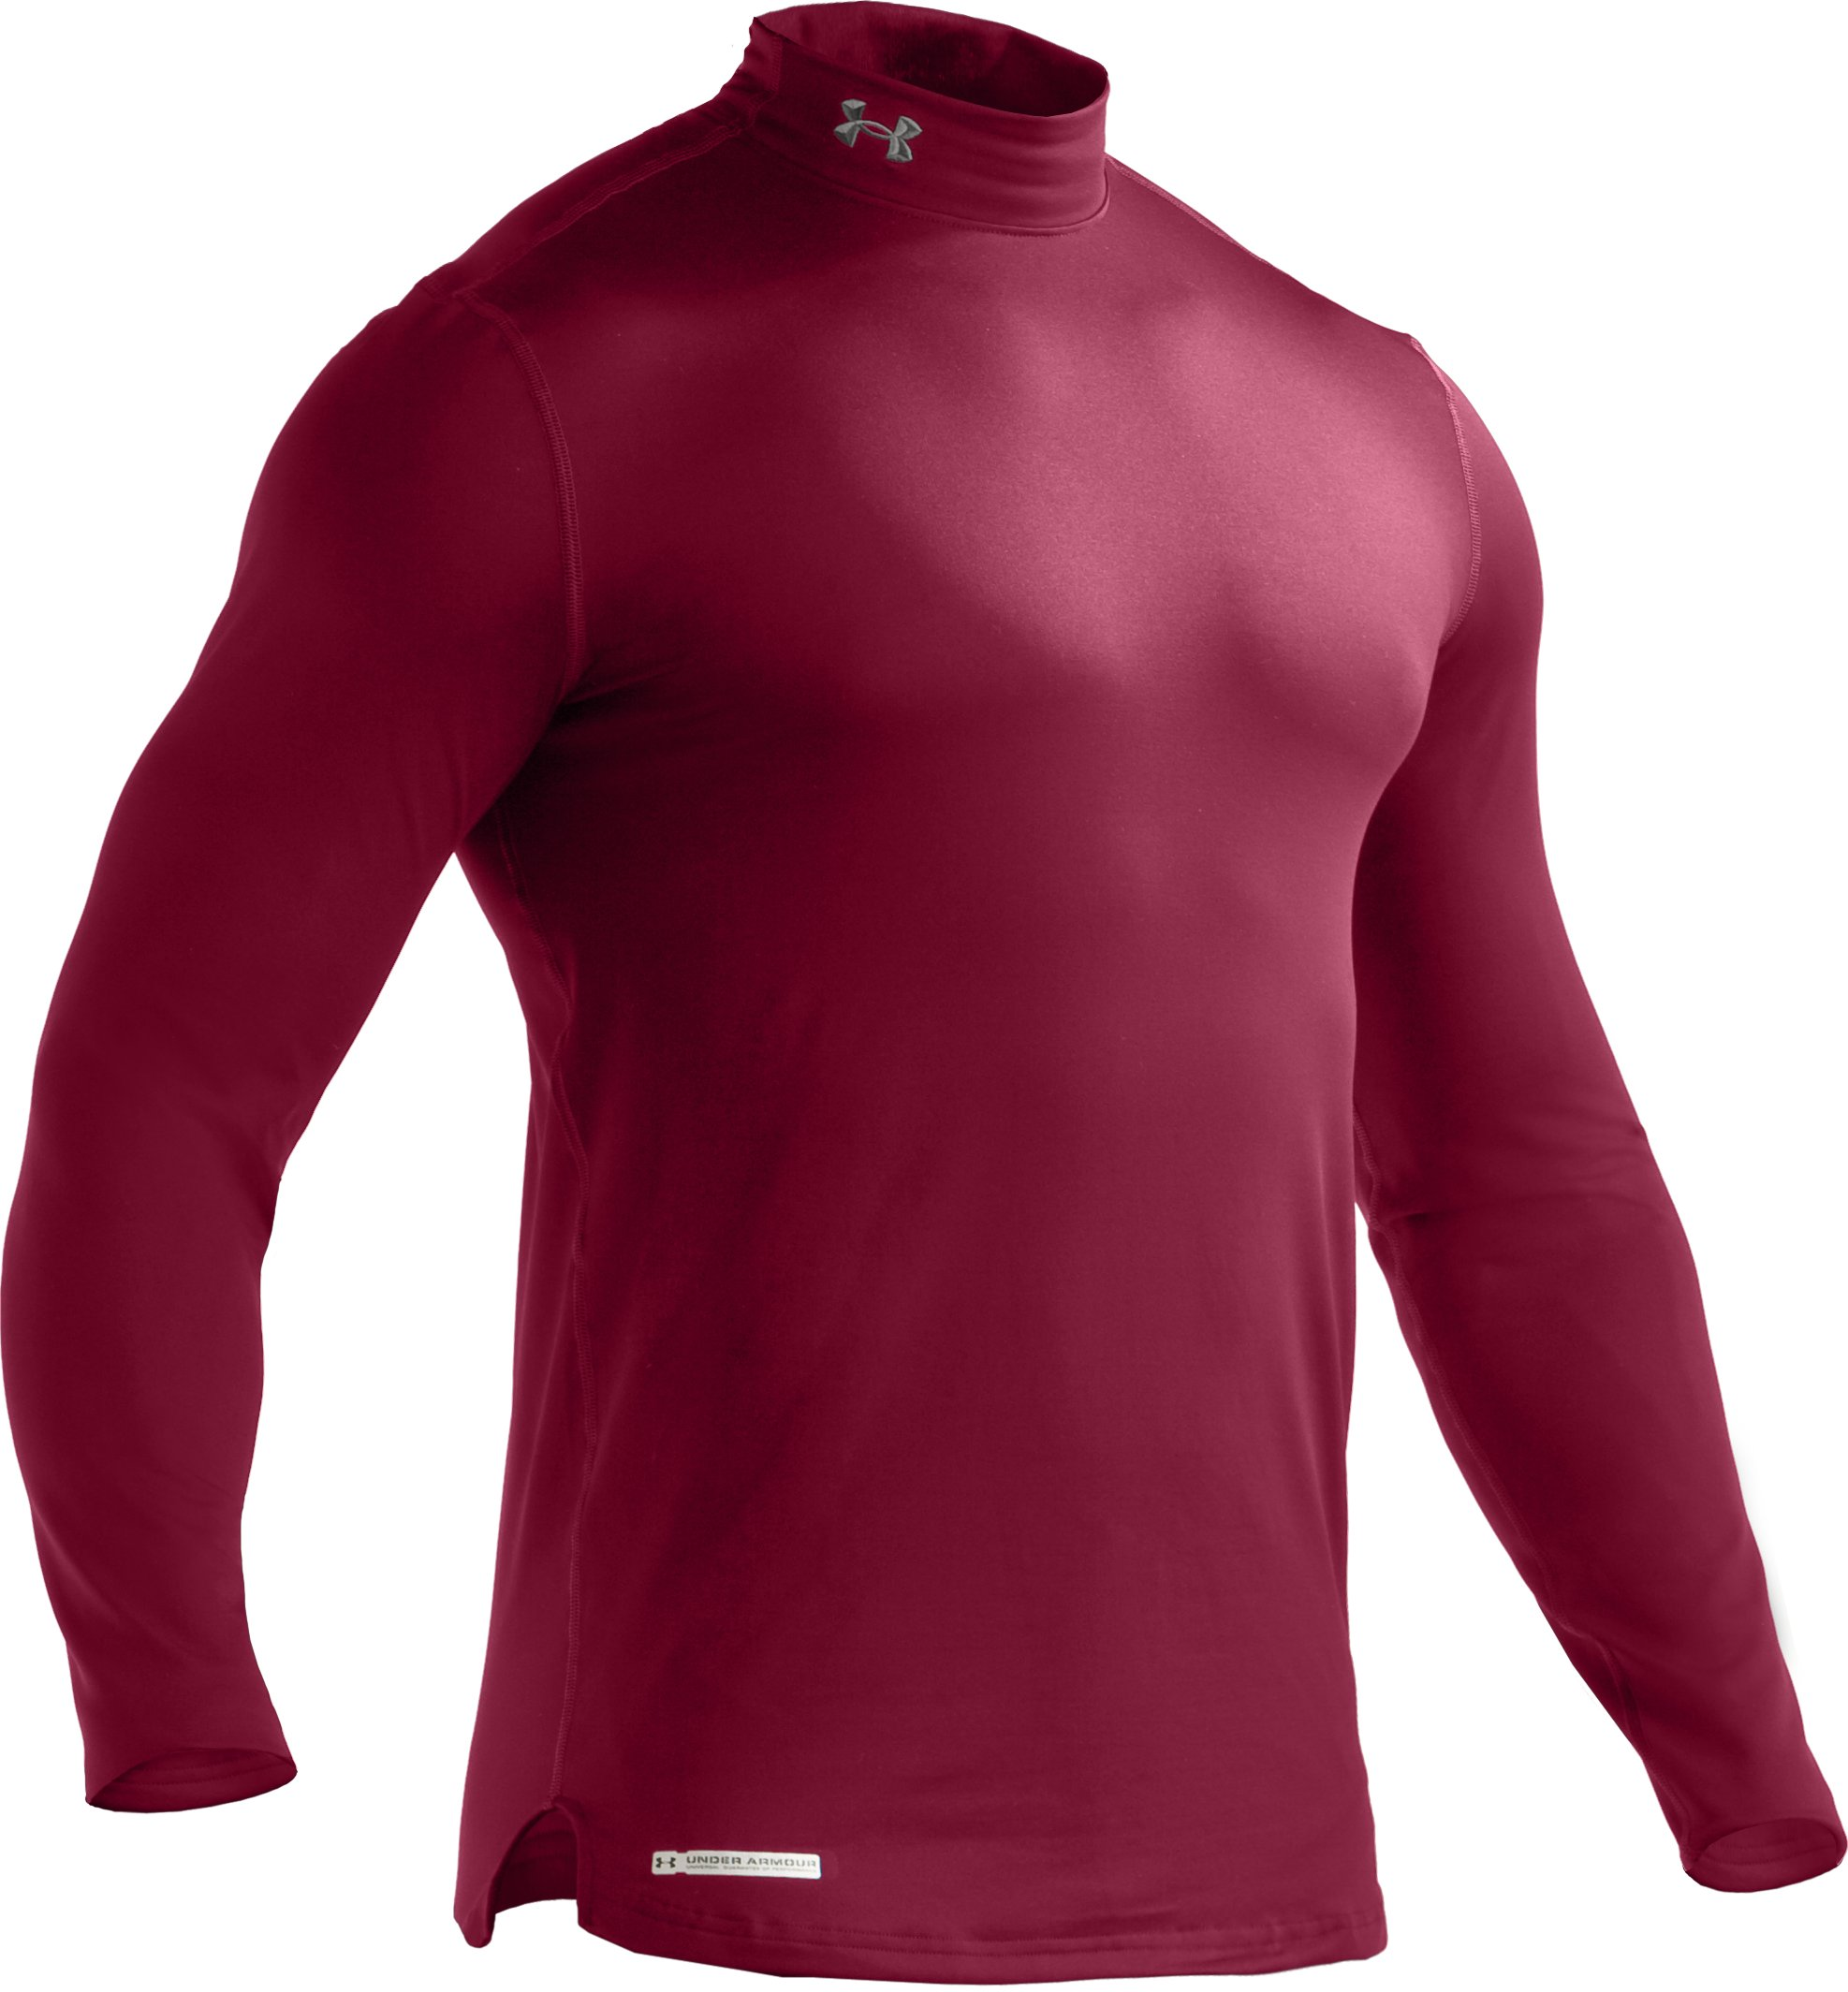 Men's ColdGear® Fitted Long Sleeve Mock, Maroon, undefined